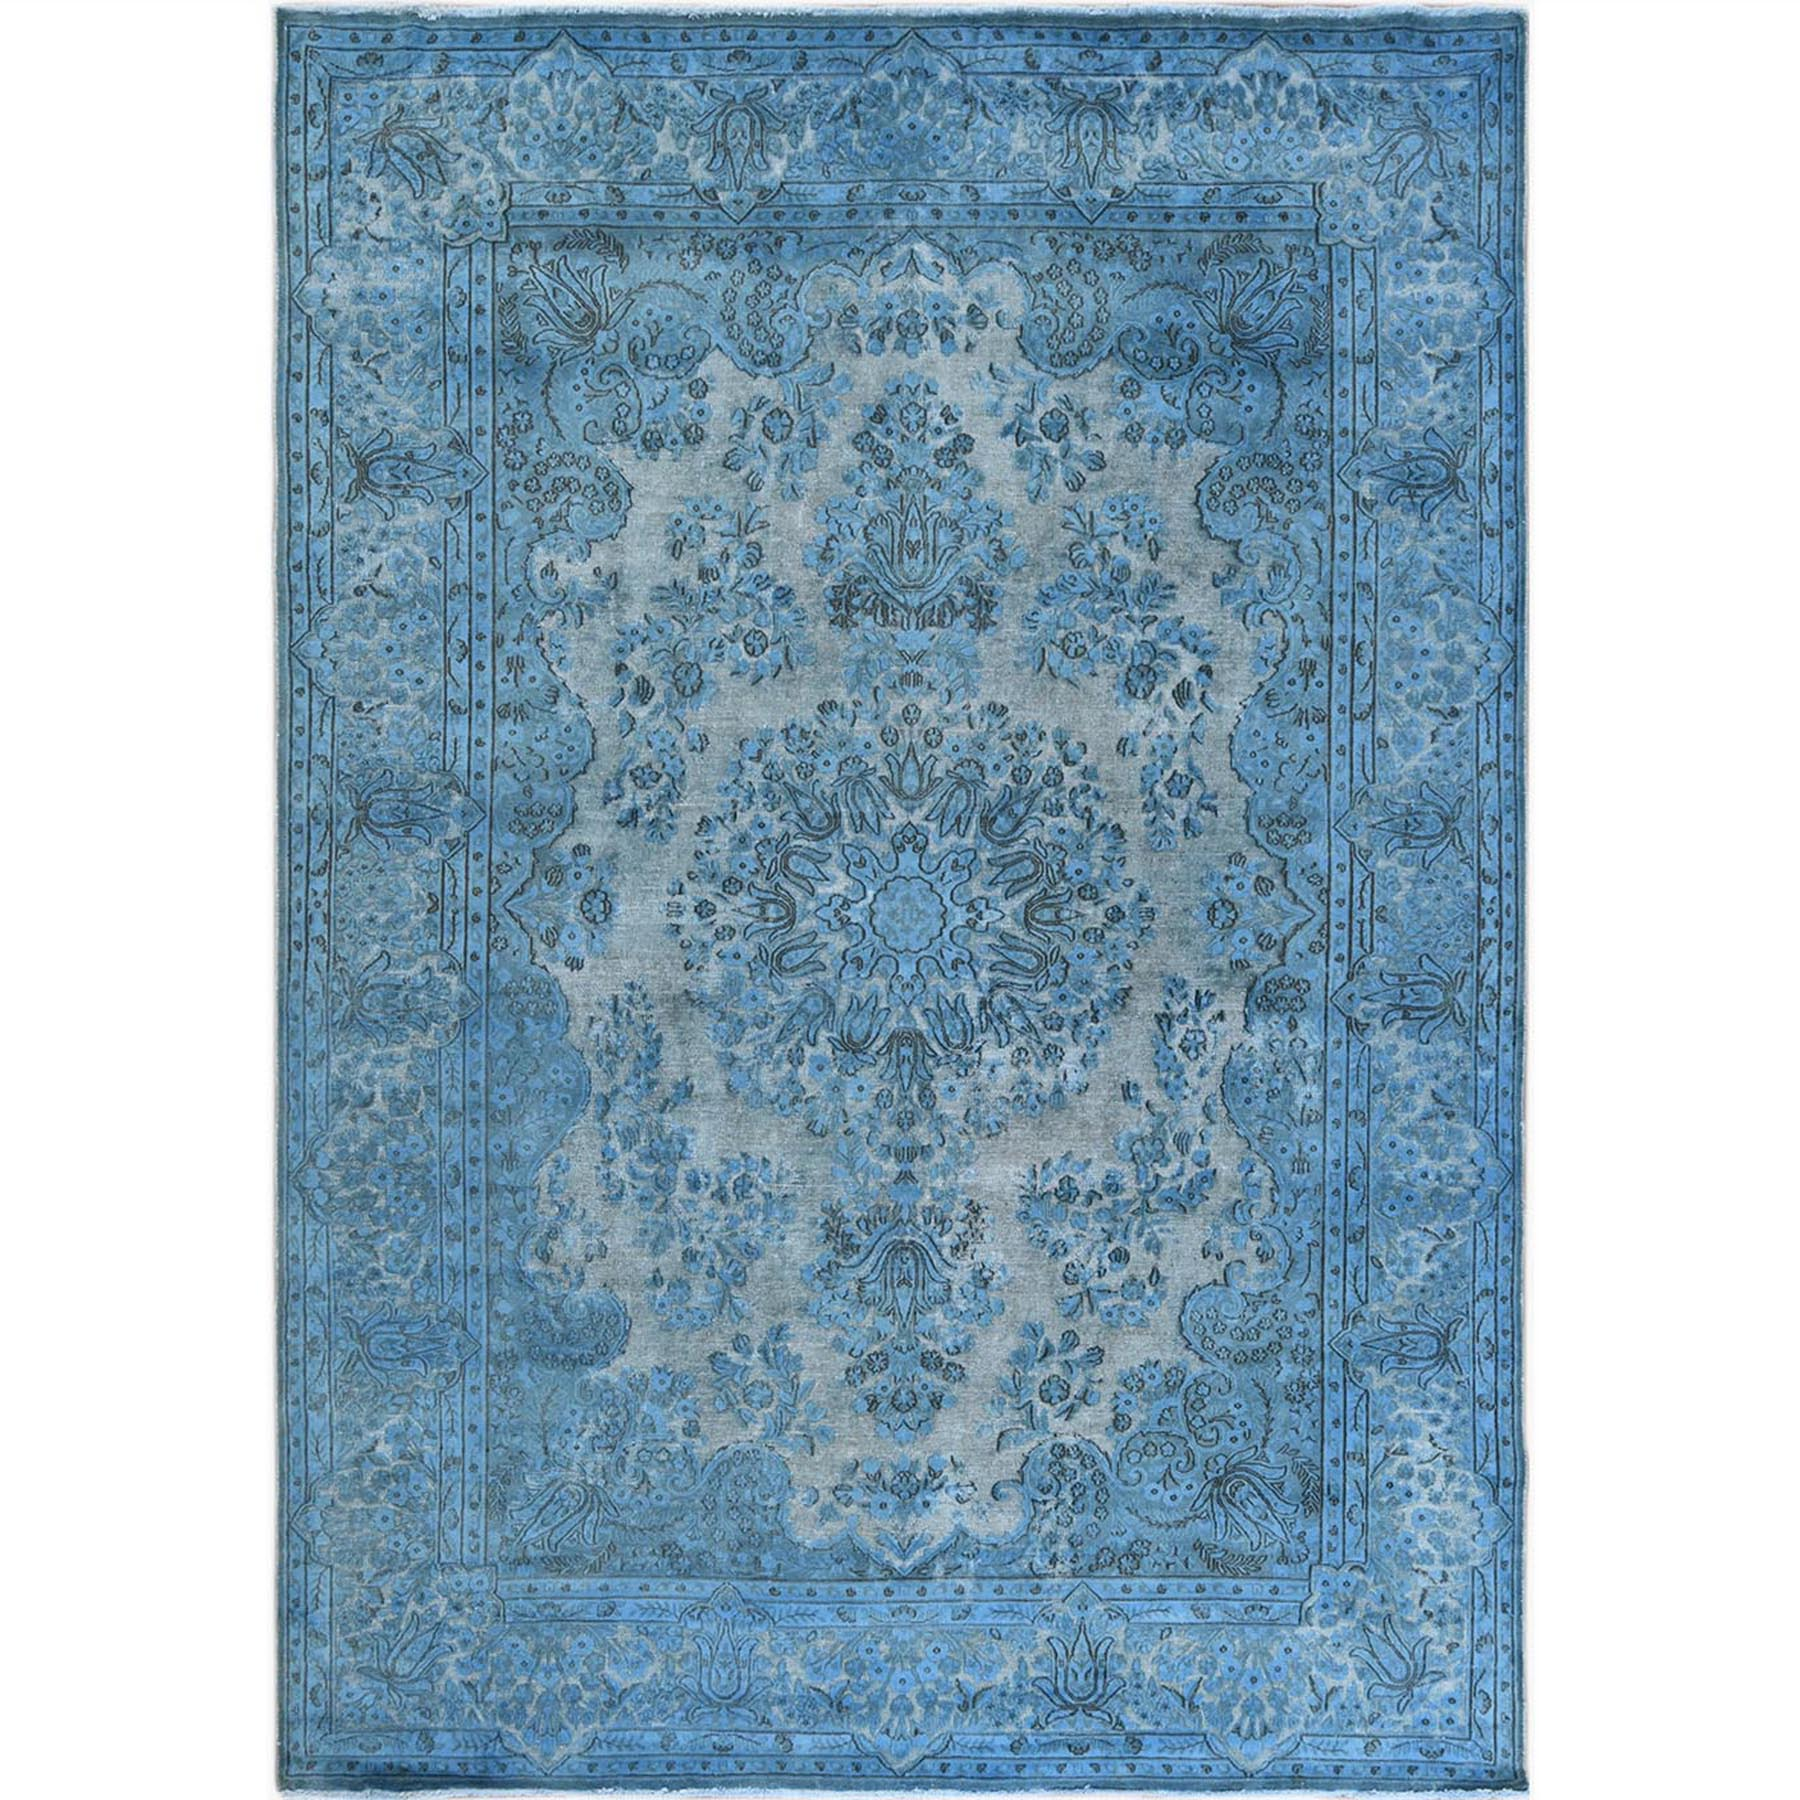 Fetneh Collection And Vintage Overdyed Collection Hand Knotted Blue Rug No: 1122658